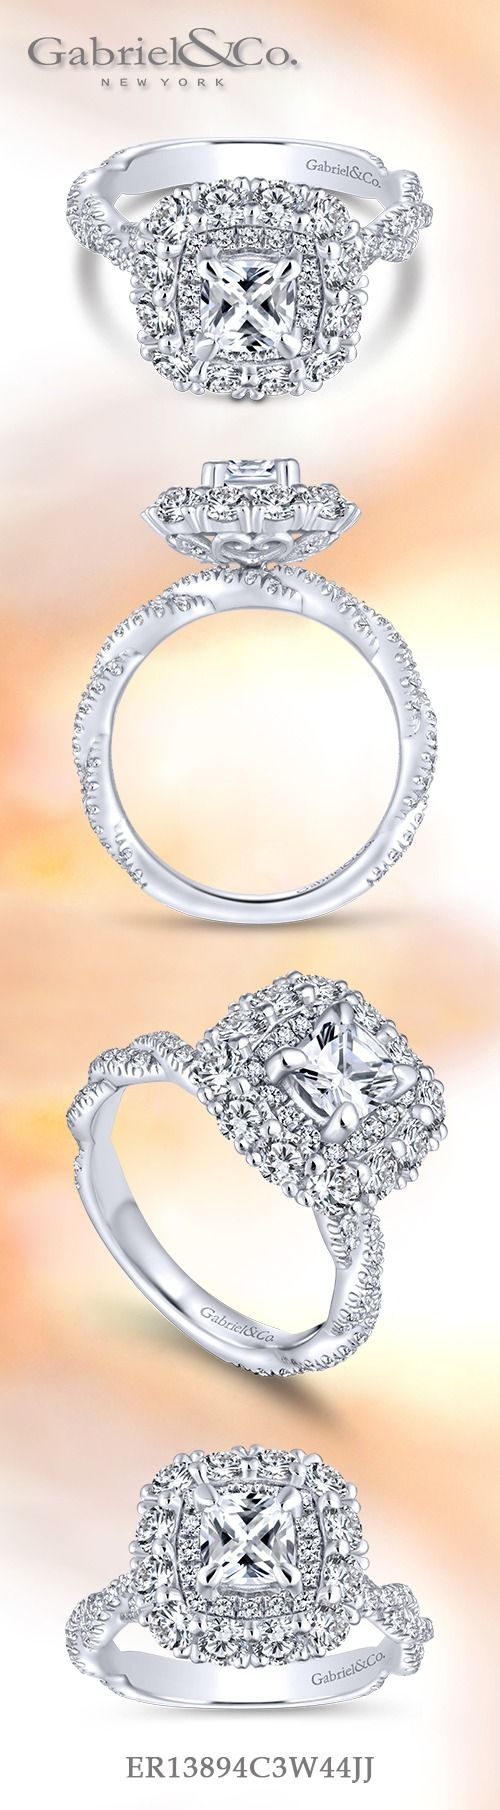 Gabriel & Co.-Voted #1 Most Preferred Fine Jewelry and Bridal Brand. 14k White Gold Cushion Cut Double Halo  Engagement Ring